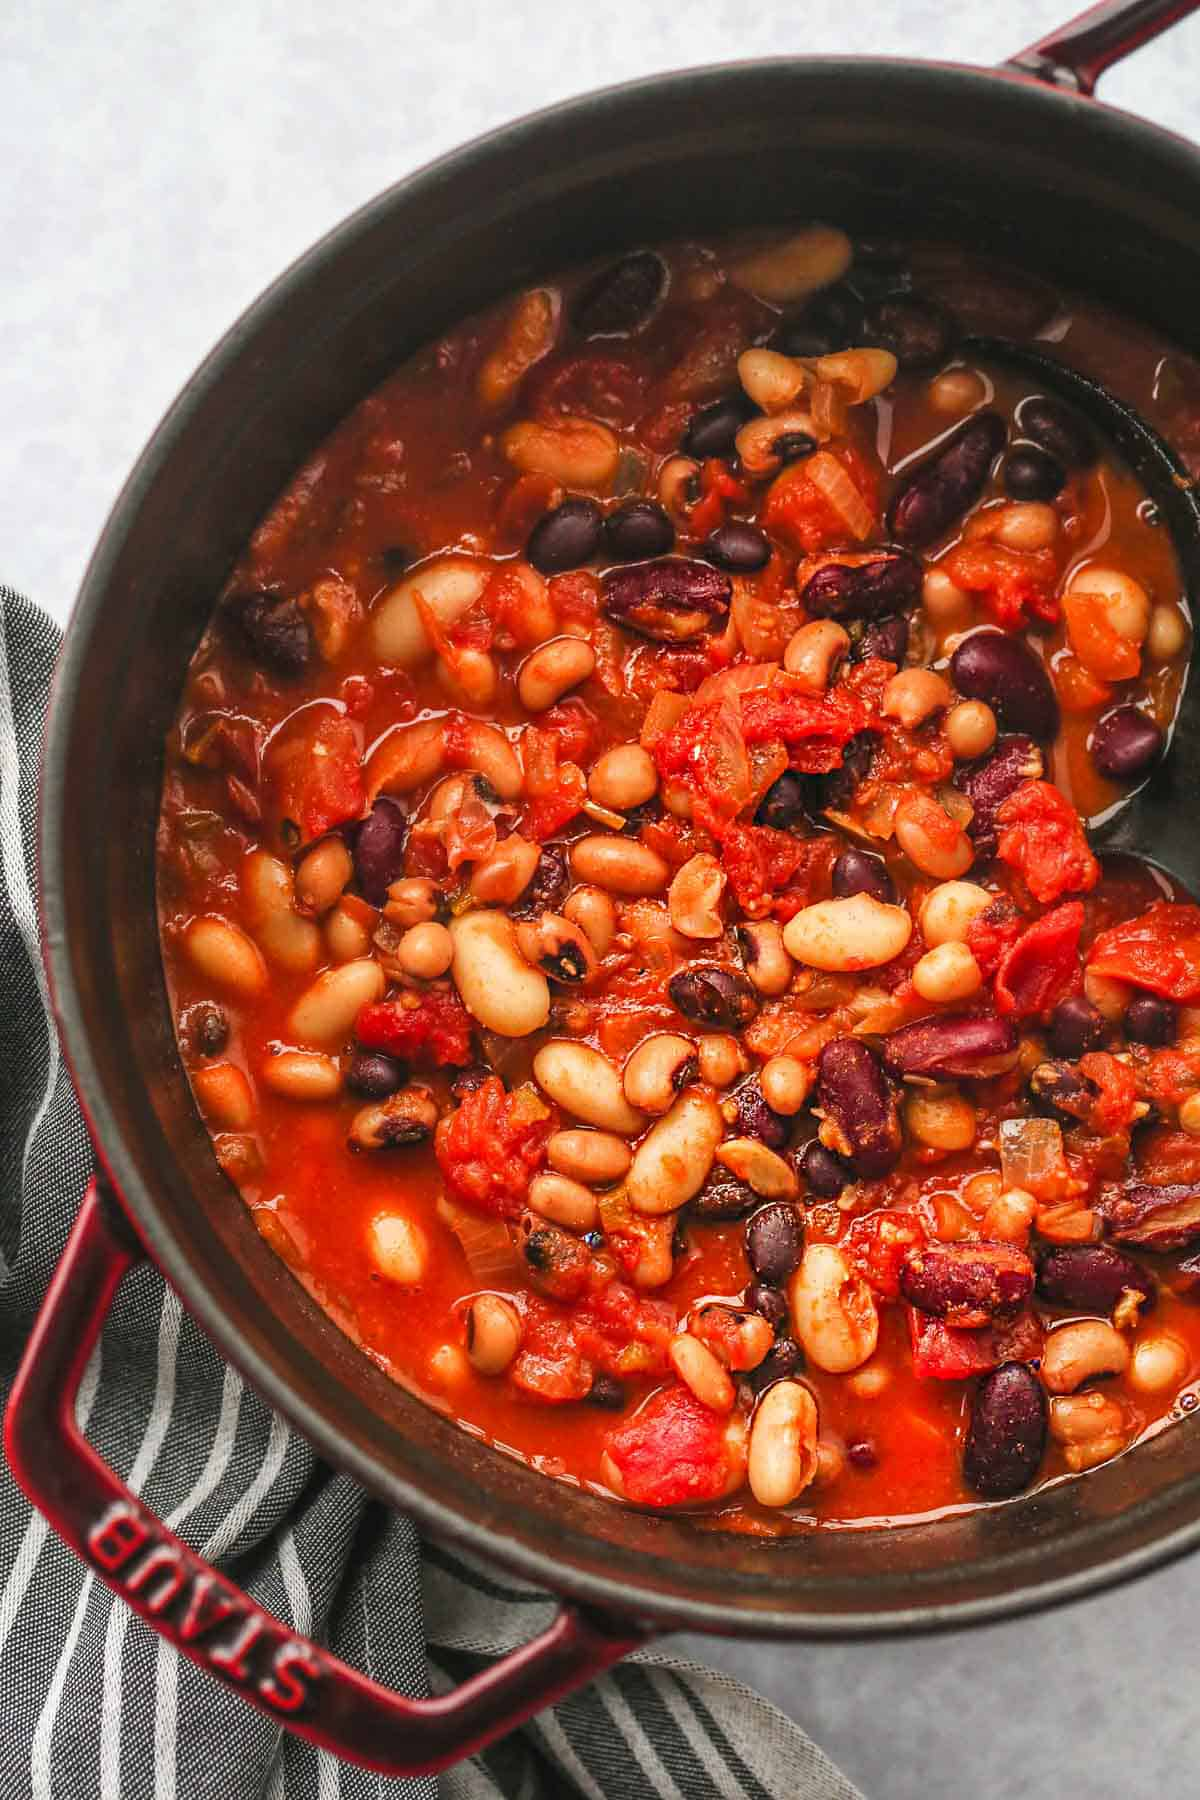 A STAUB cocotte with vegan bean chili